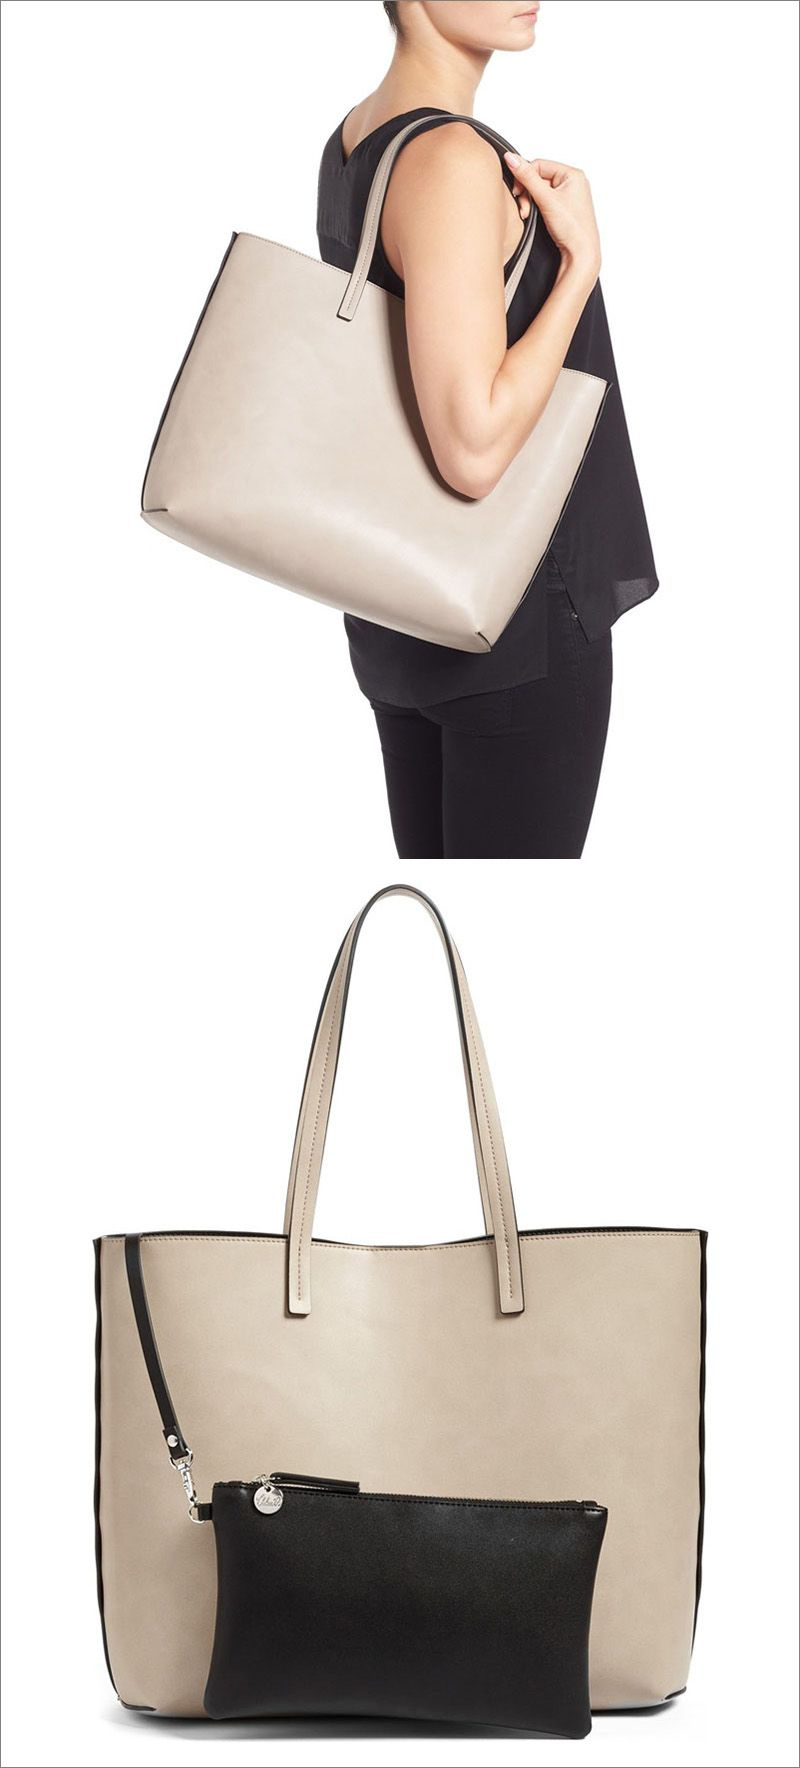 54dfb5f4b0da This minimalist light colored faux leather tote comes with a small black  modern zip up pouch to tuck inside.